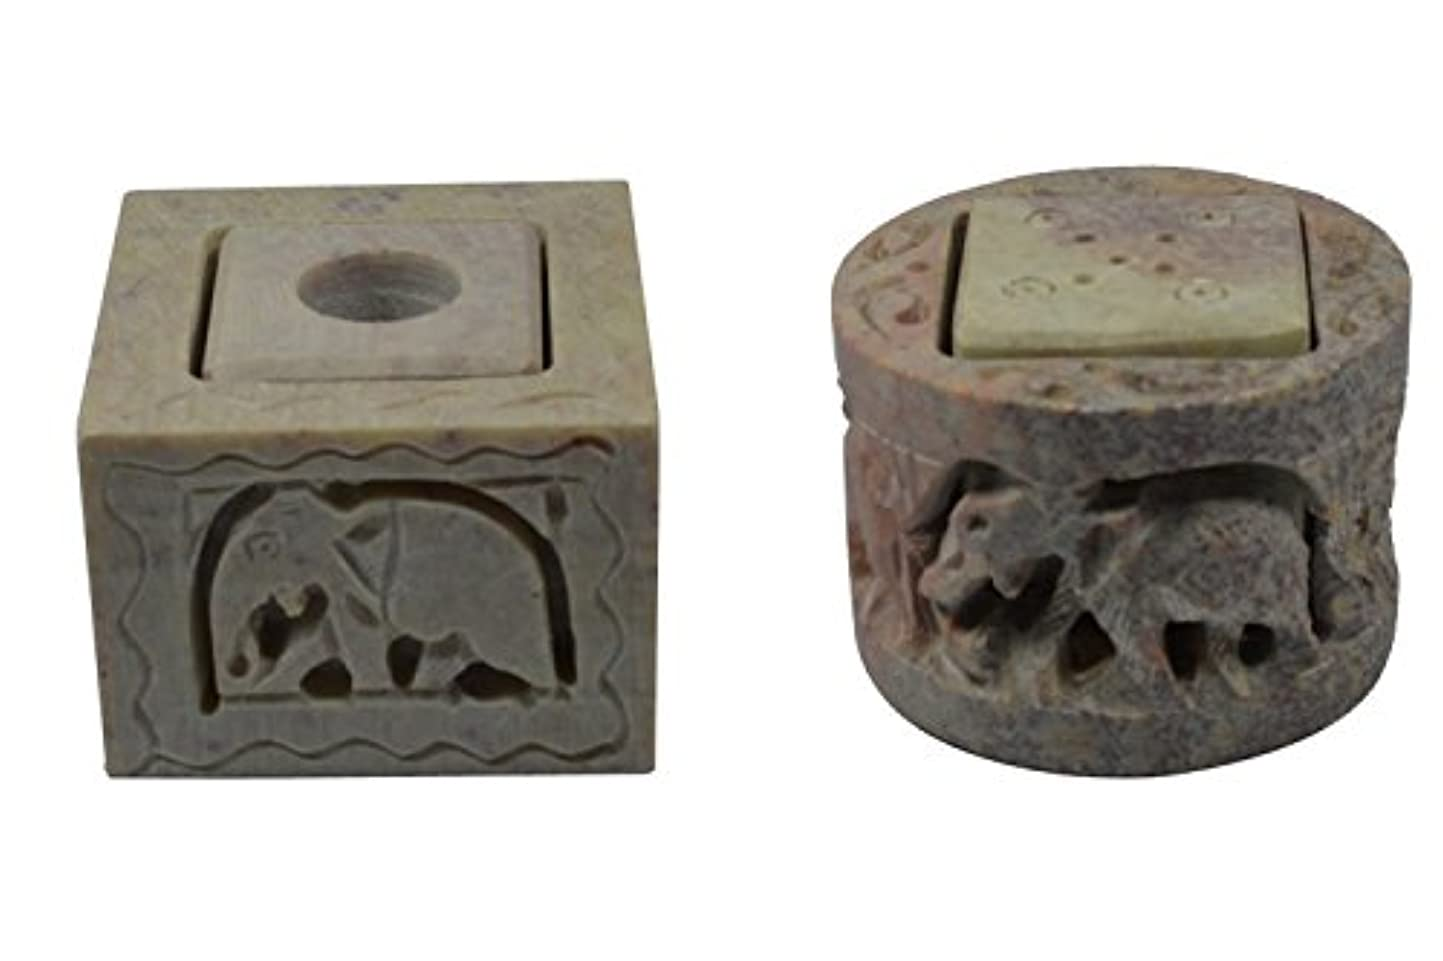 前にプロフィールオフセットRoyal Handicrafts Handcrafted Soapstone Candle & Incense Holder With Elephant Carving - Set of 2